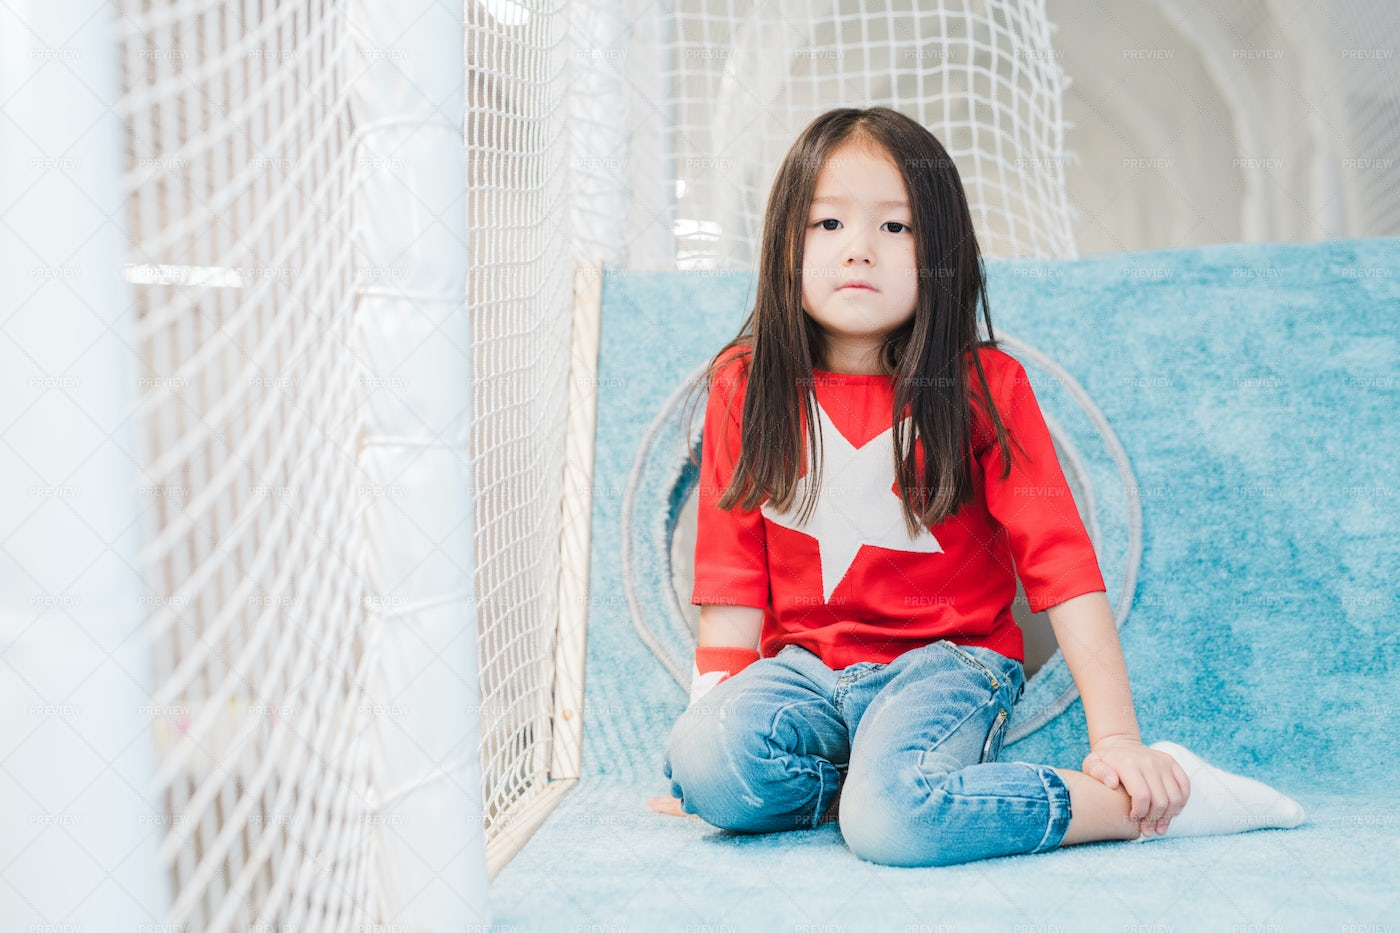 Pretty Little Asian Girl With Long...: Stock Photos